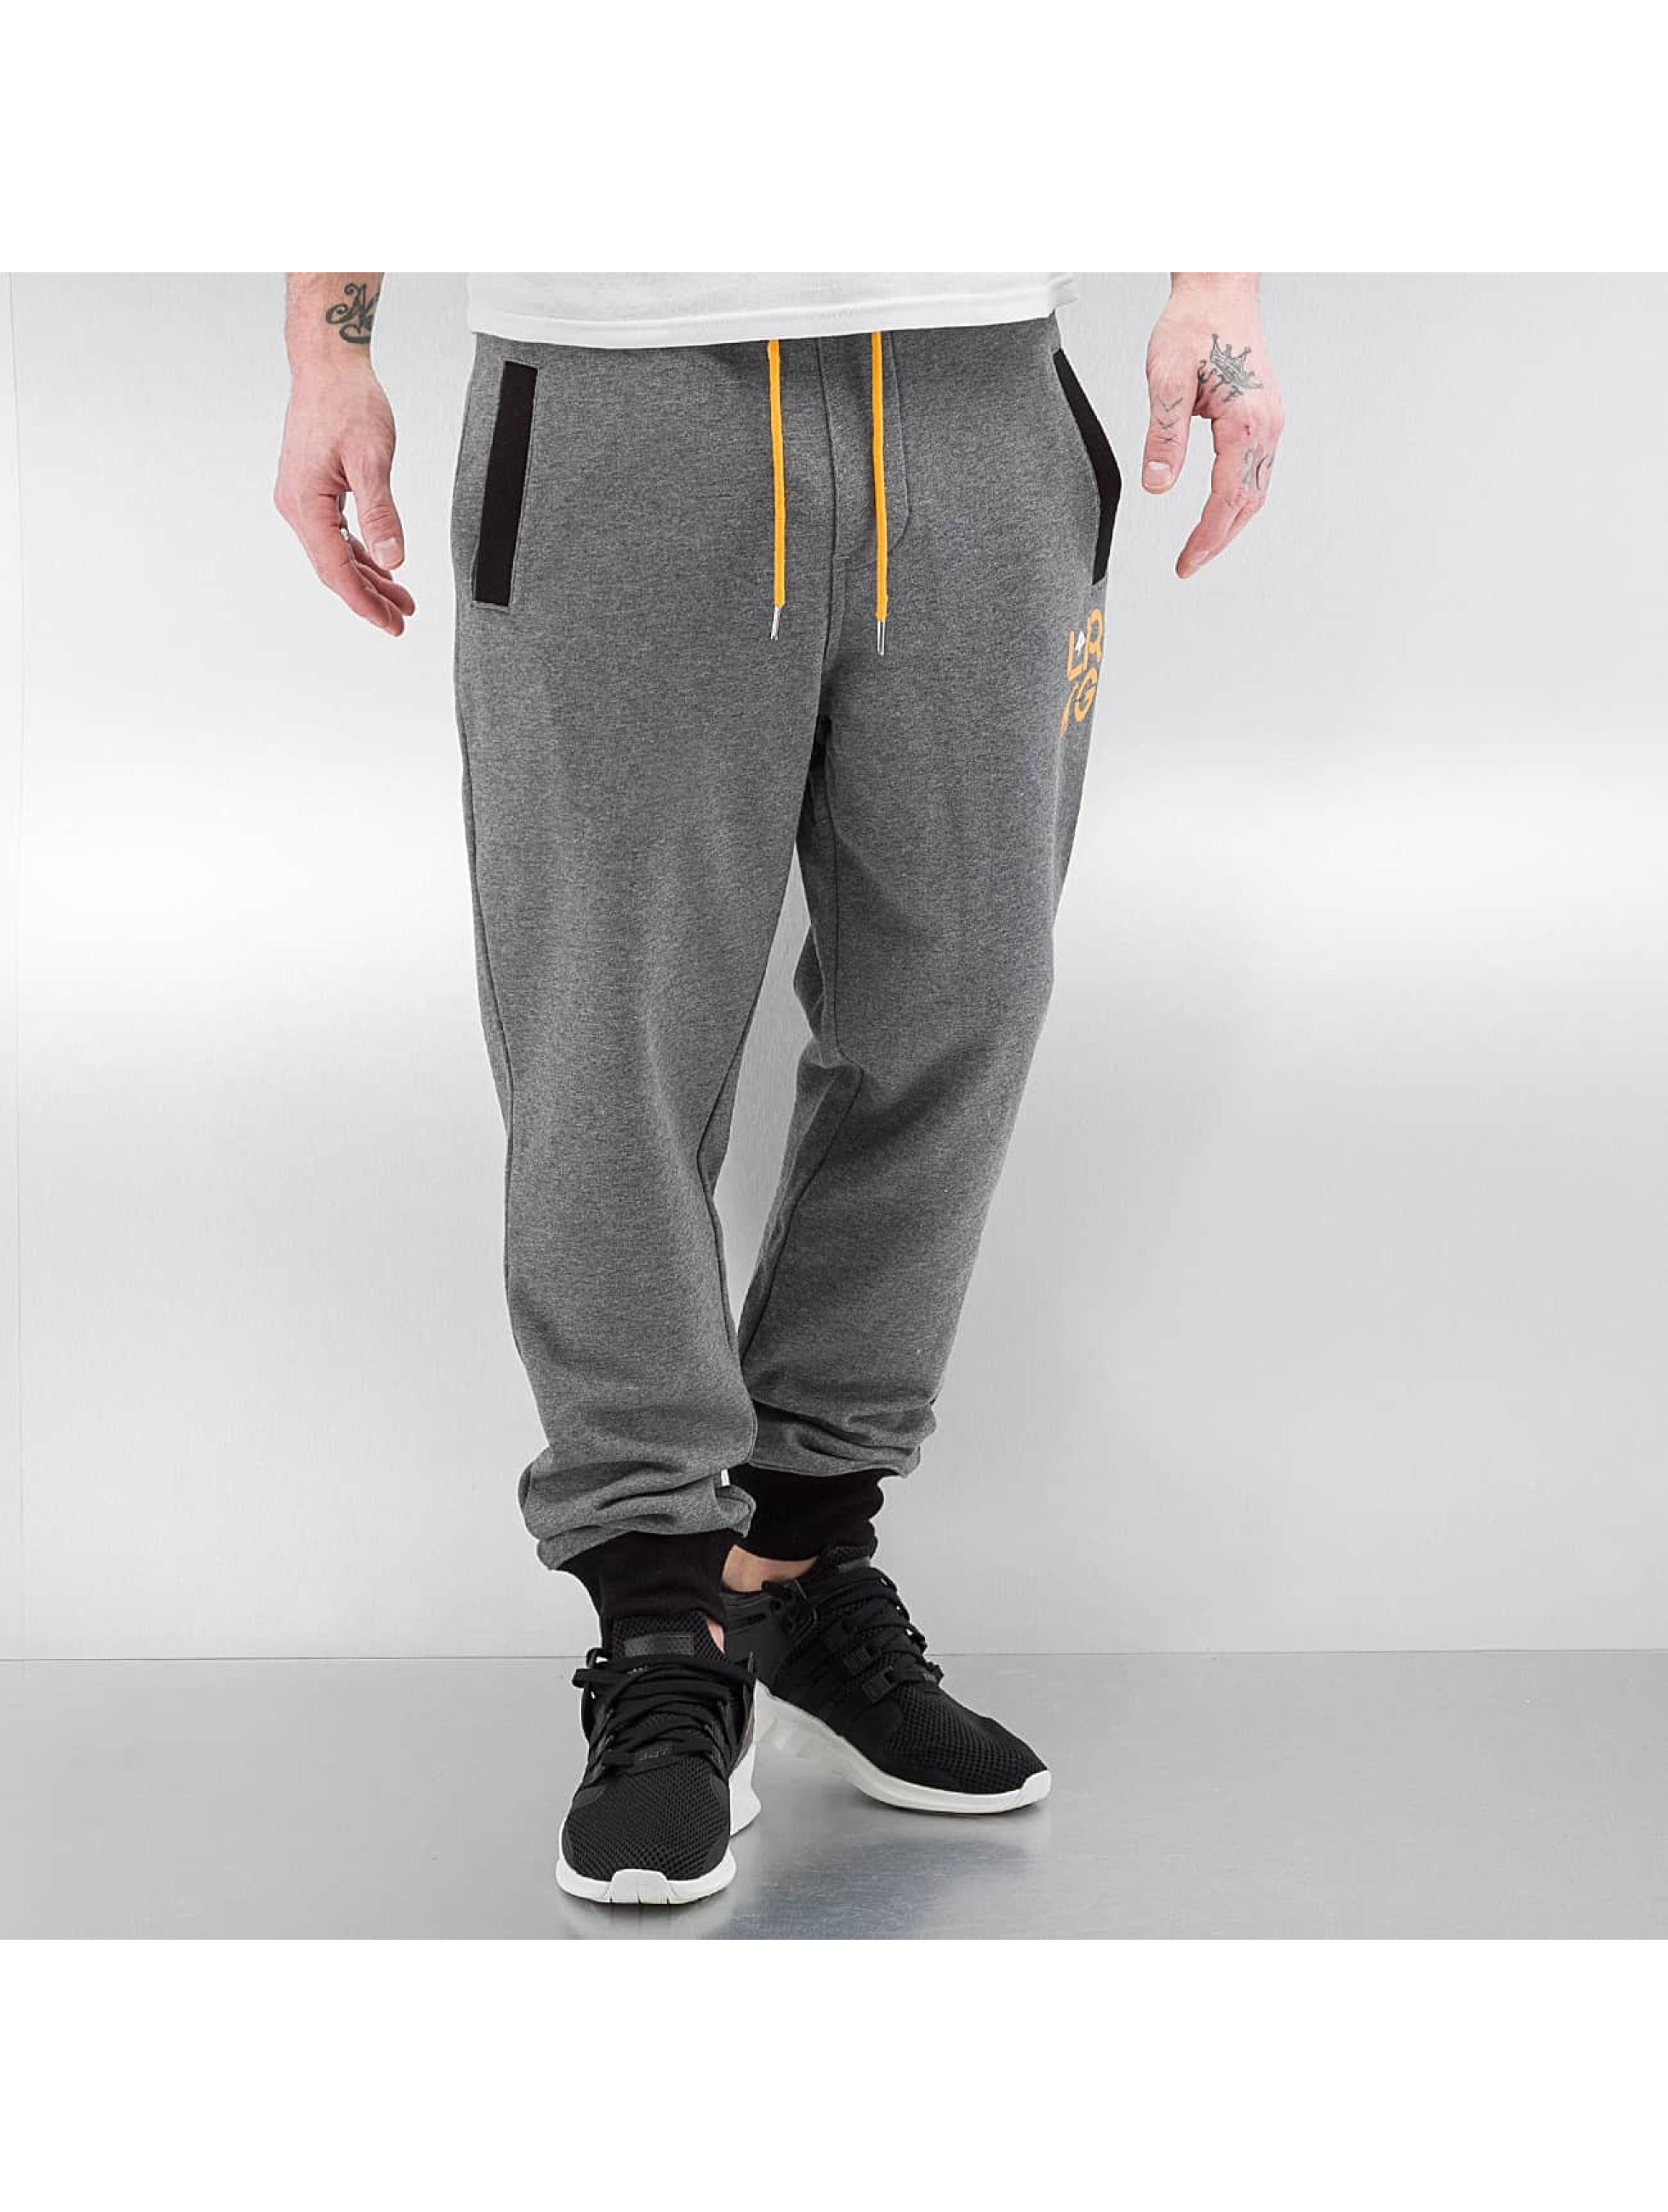 LRG Männer Jogginghose Research Collection in grau Sale Angebote Proschim